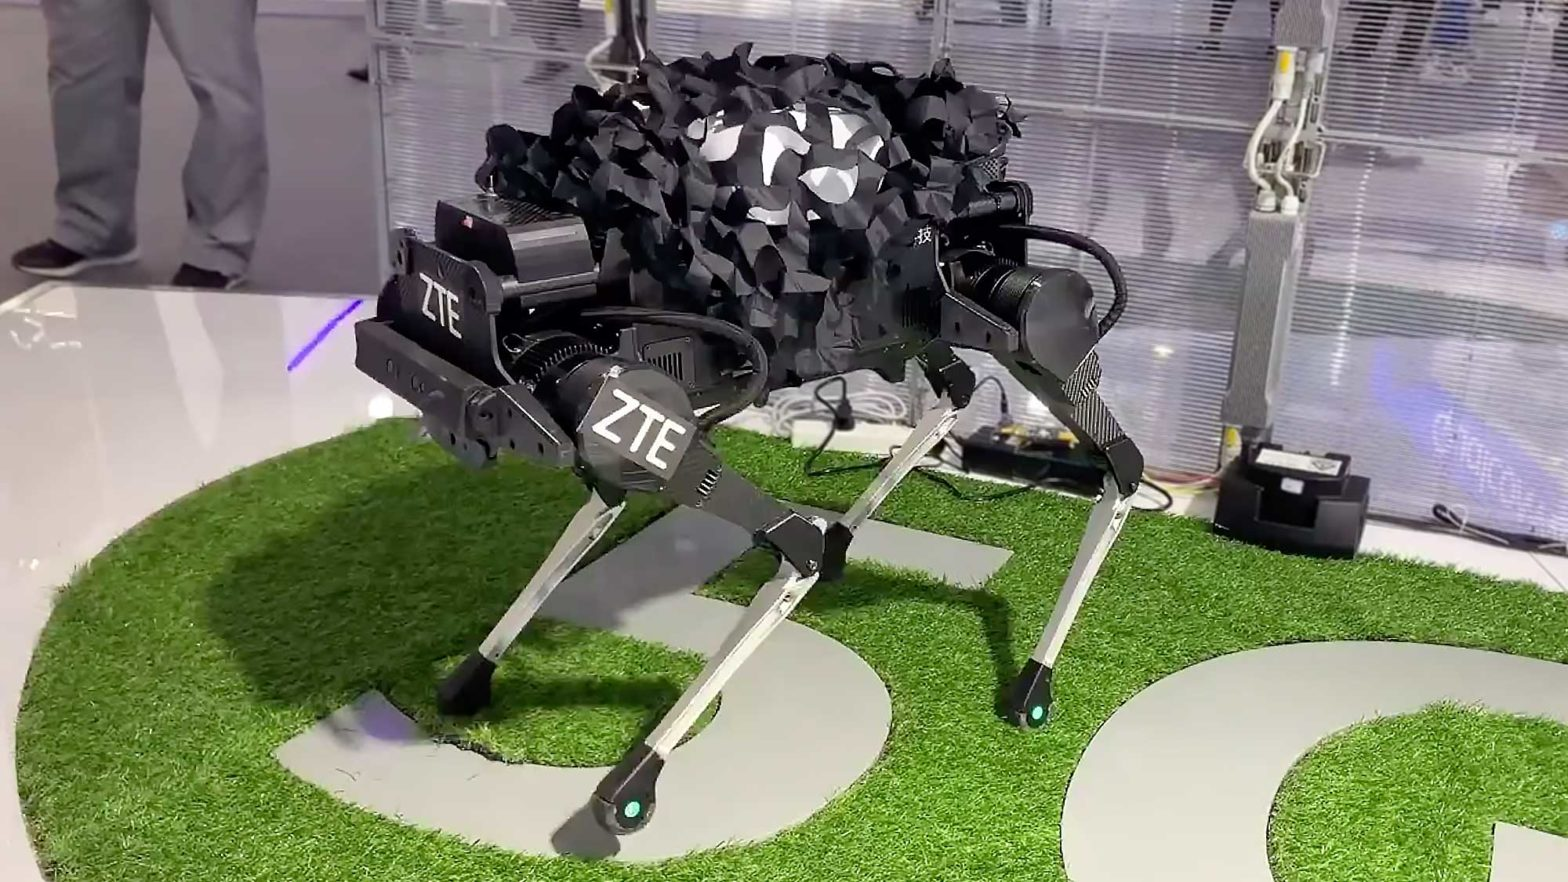 ZTE Corporation 5G Robotic Dog